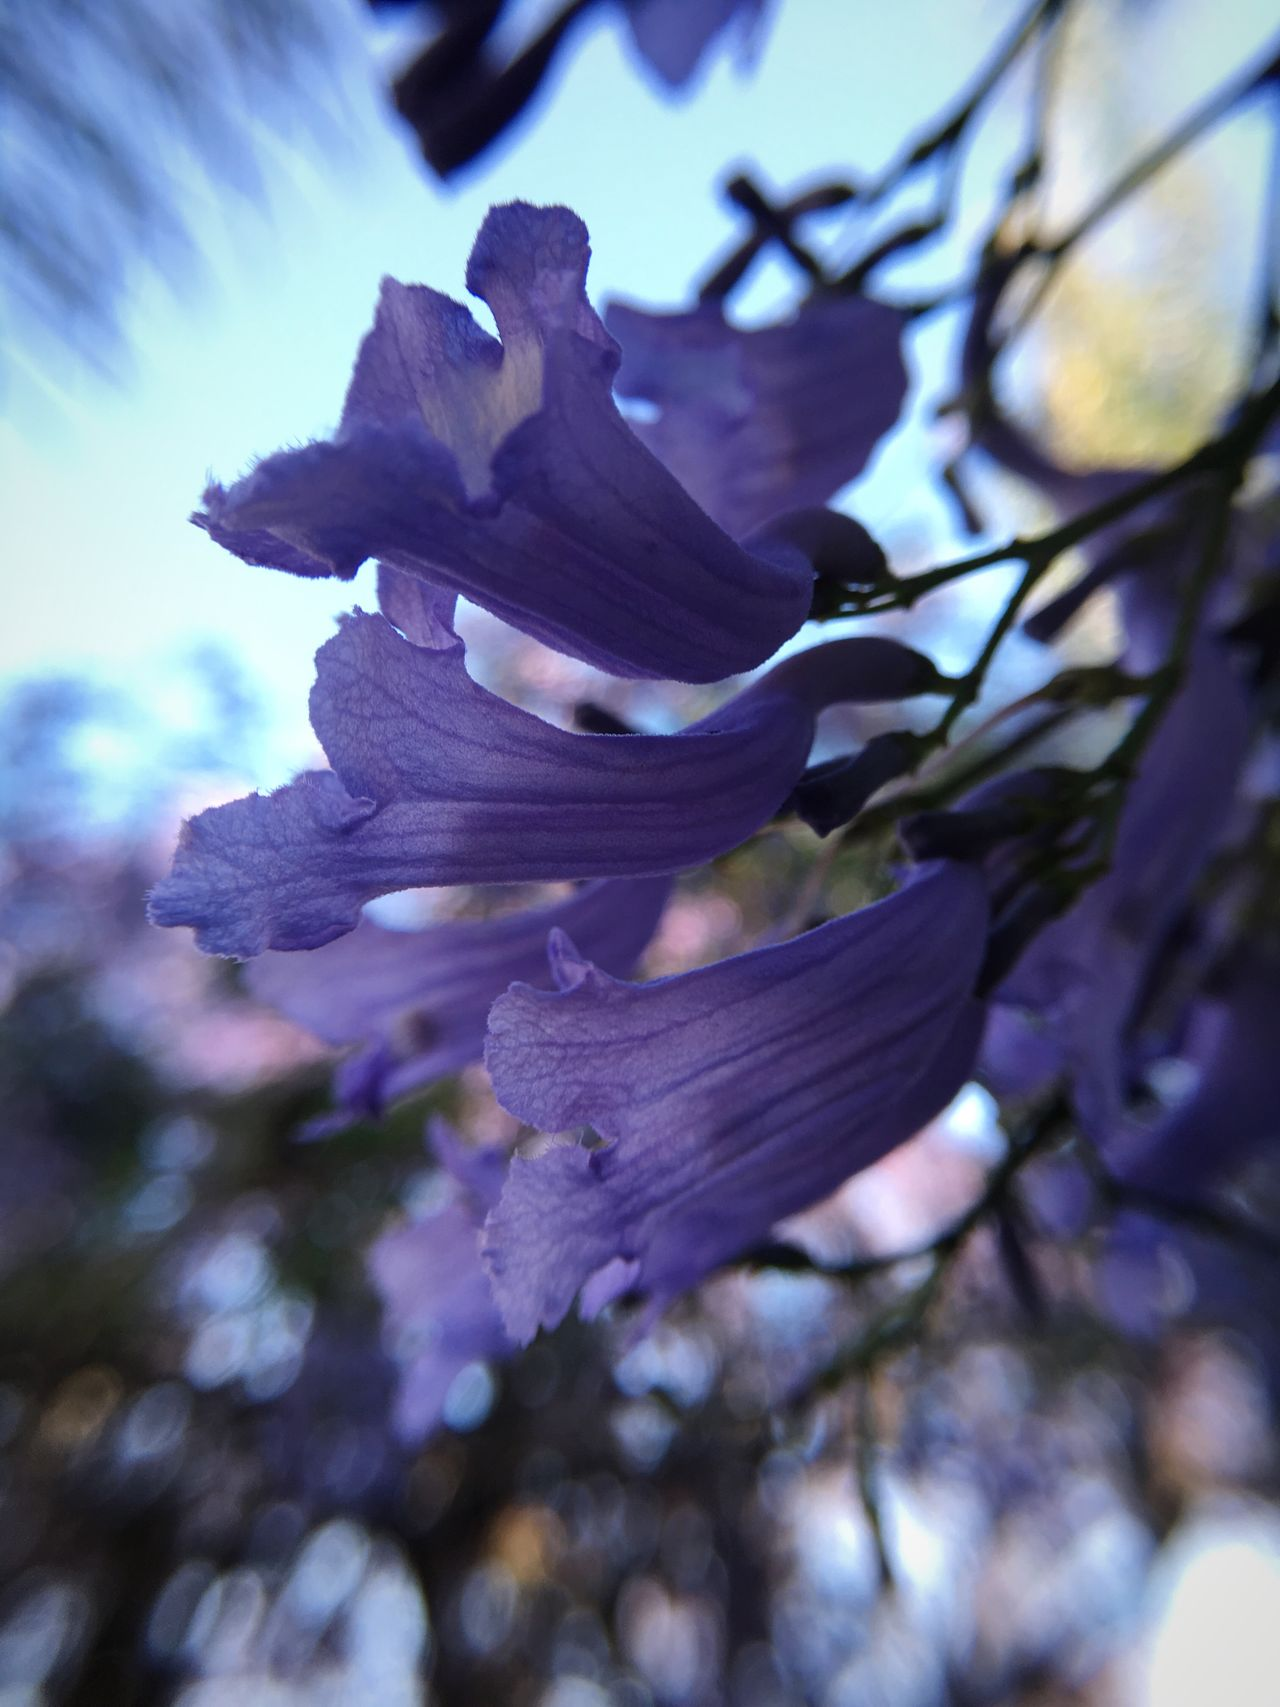 Beauty In Nature No People Nature Petal Close-up Flower Fragility Growth Day Outdoors Flower Head Tree Sky Macro Jacaranda Springtime Spring Blossom Blooming California Purple Flower Purple Dreamy